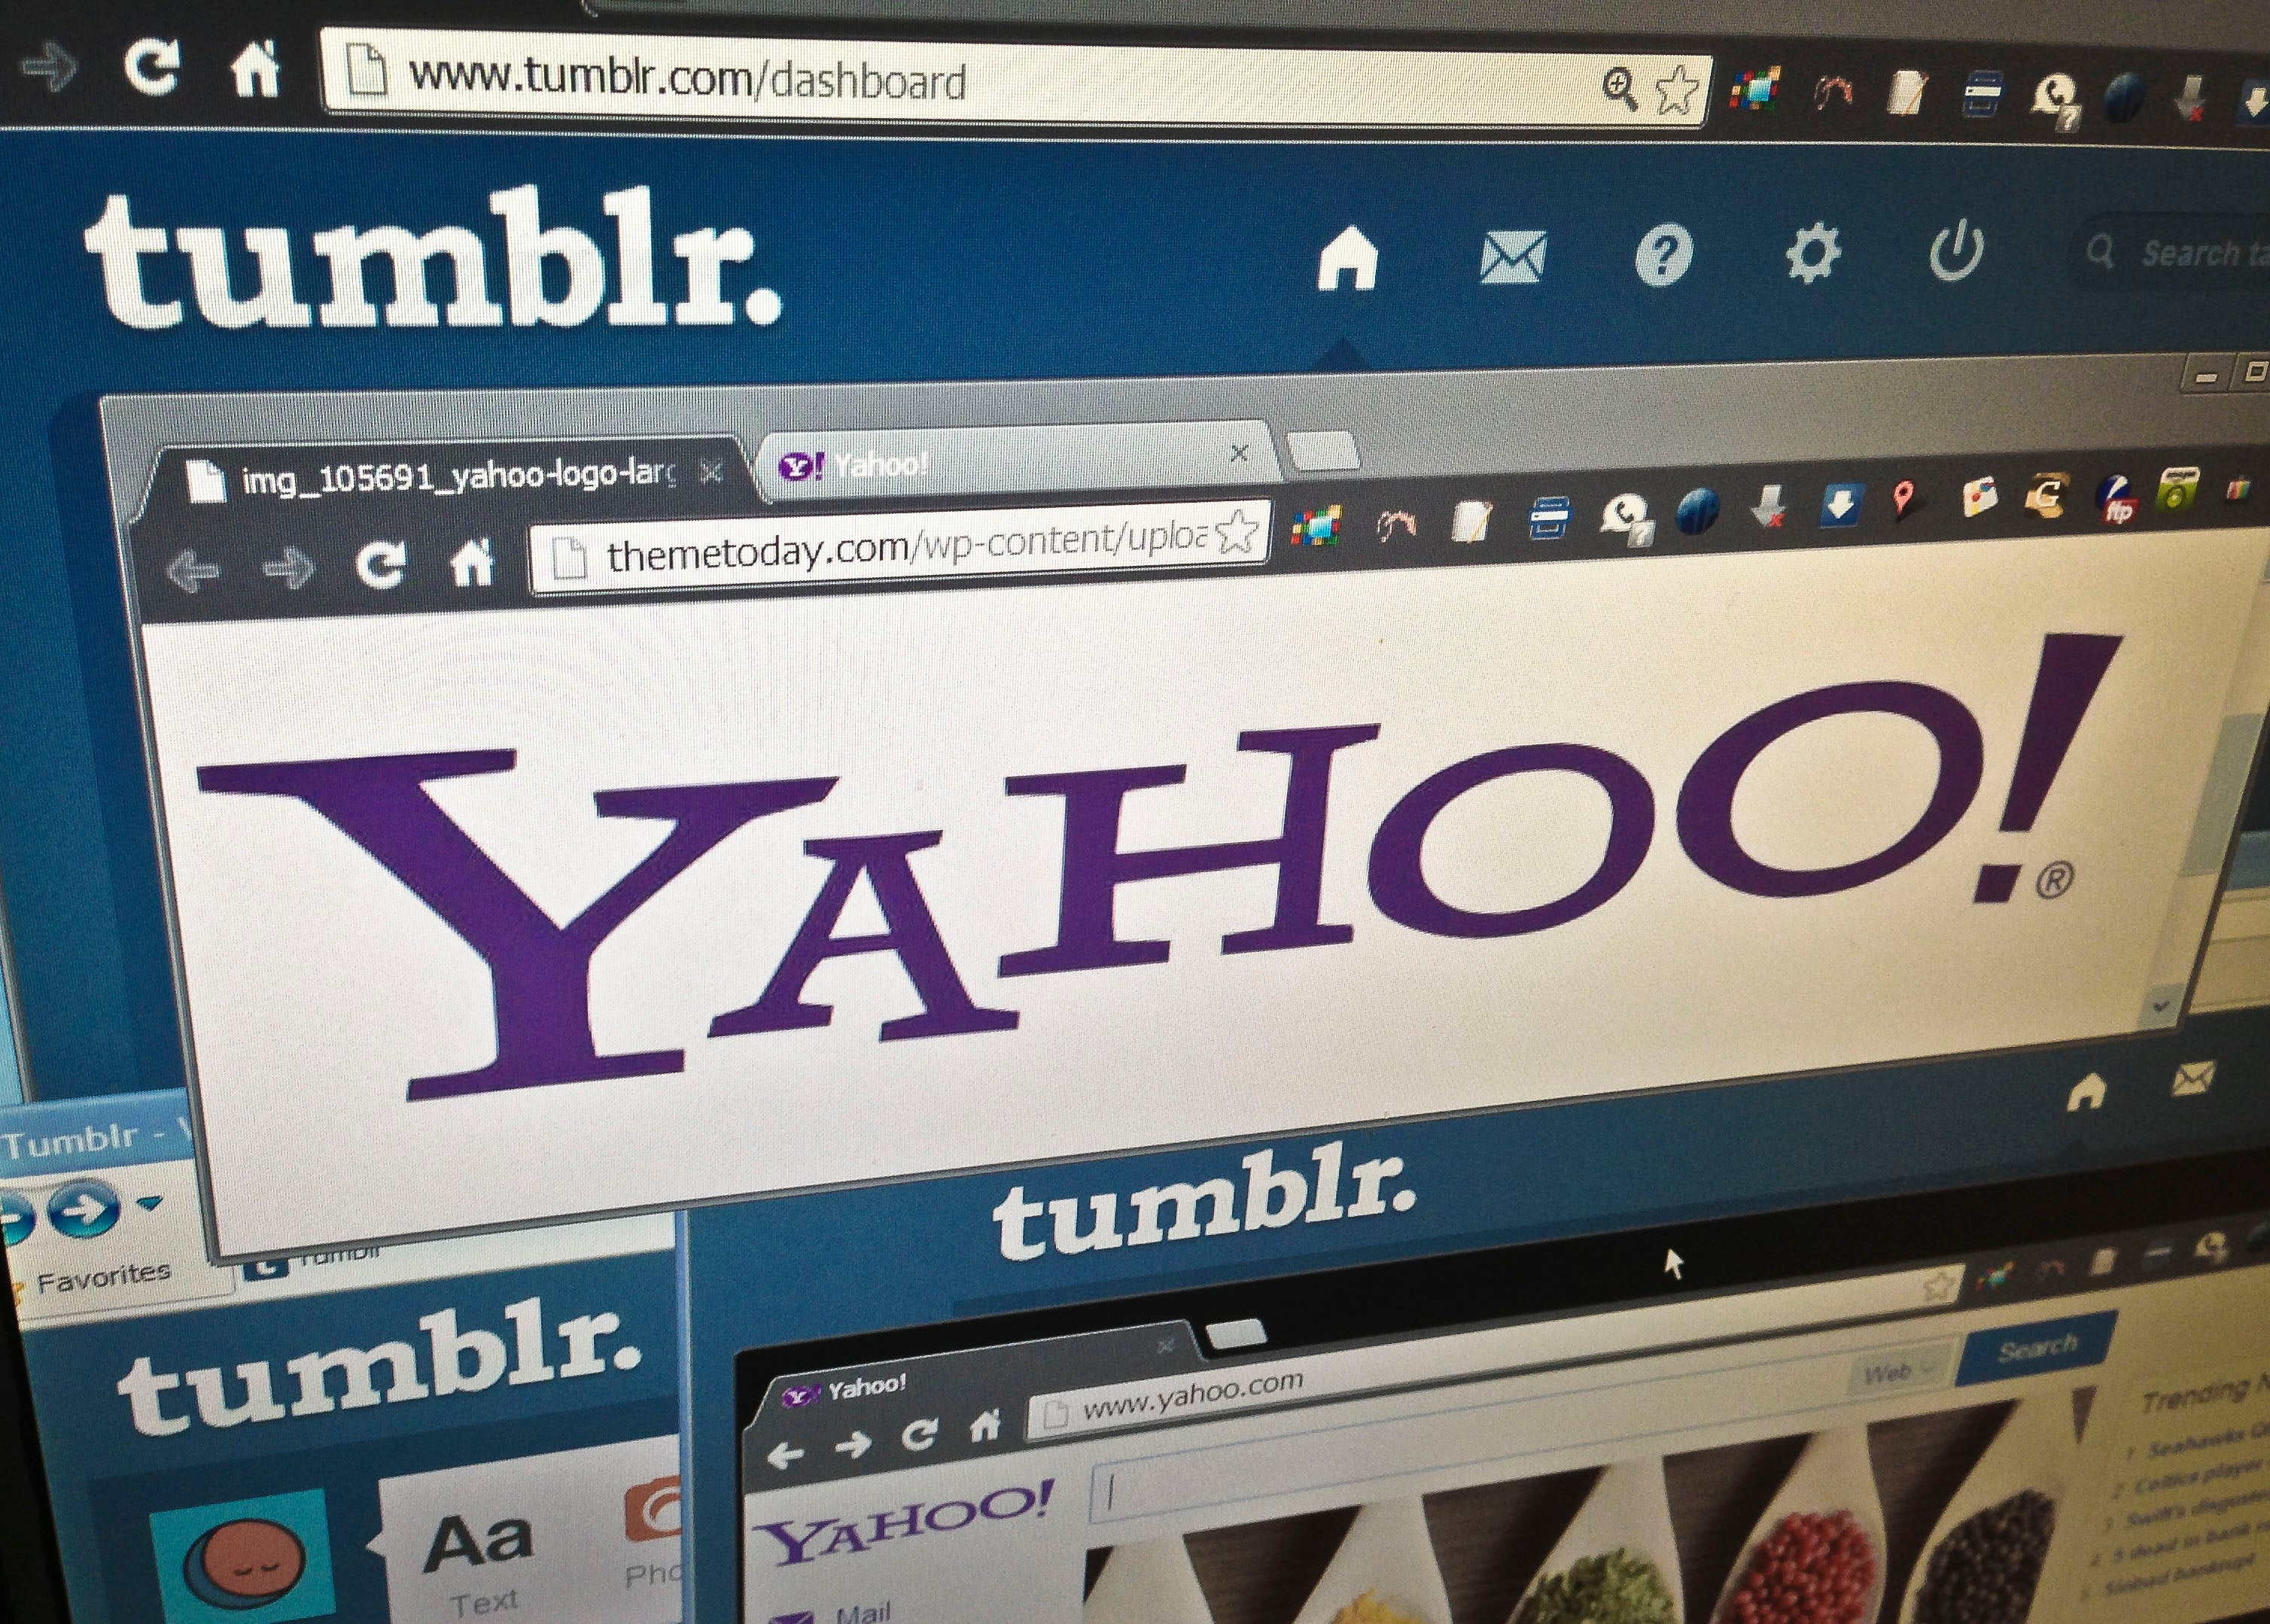 Yahoo! Adds Tumblr, But Is This Another Underpants Gnome Deal?